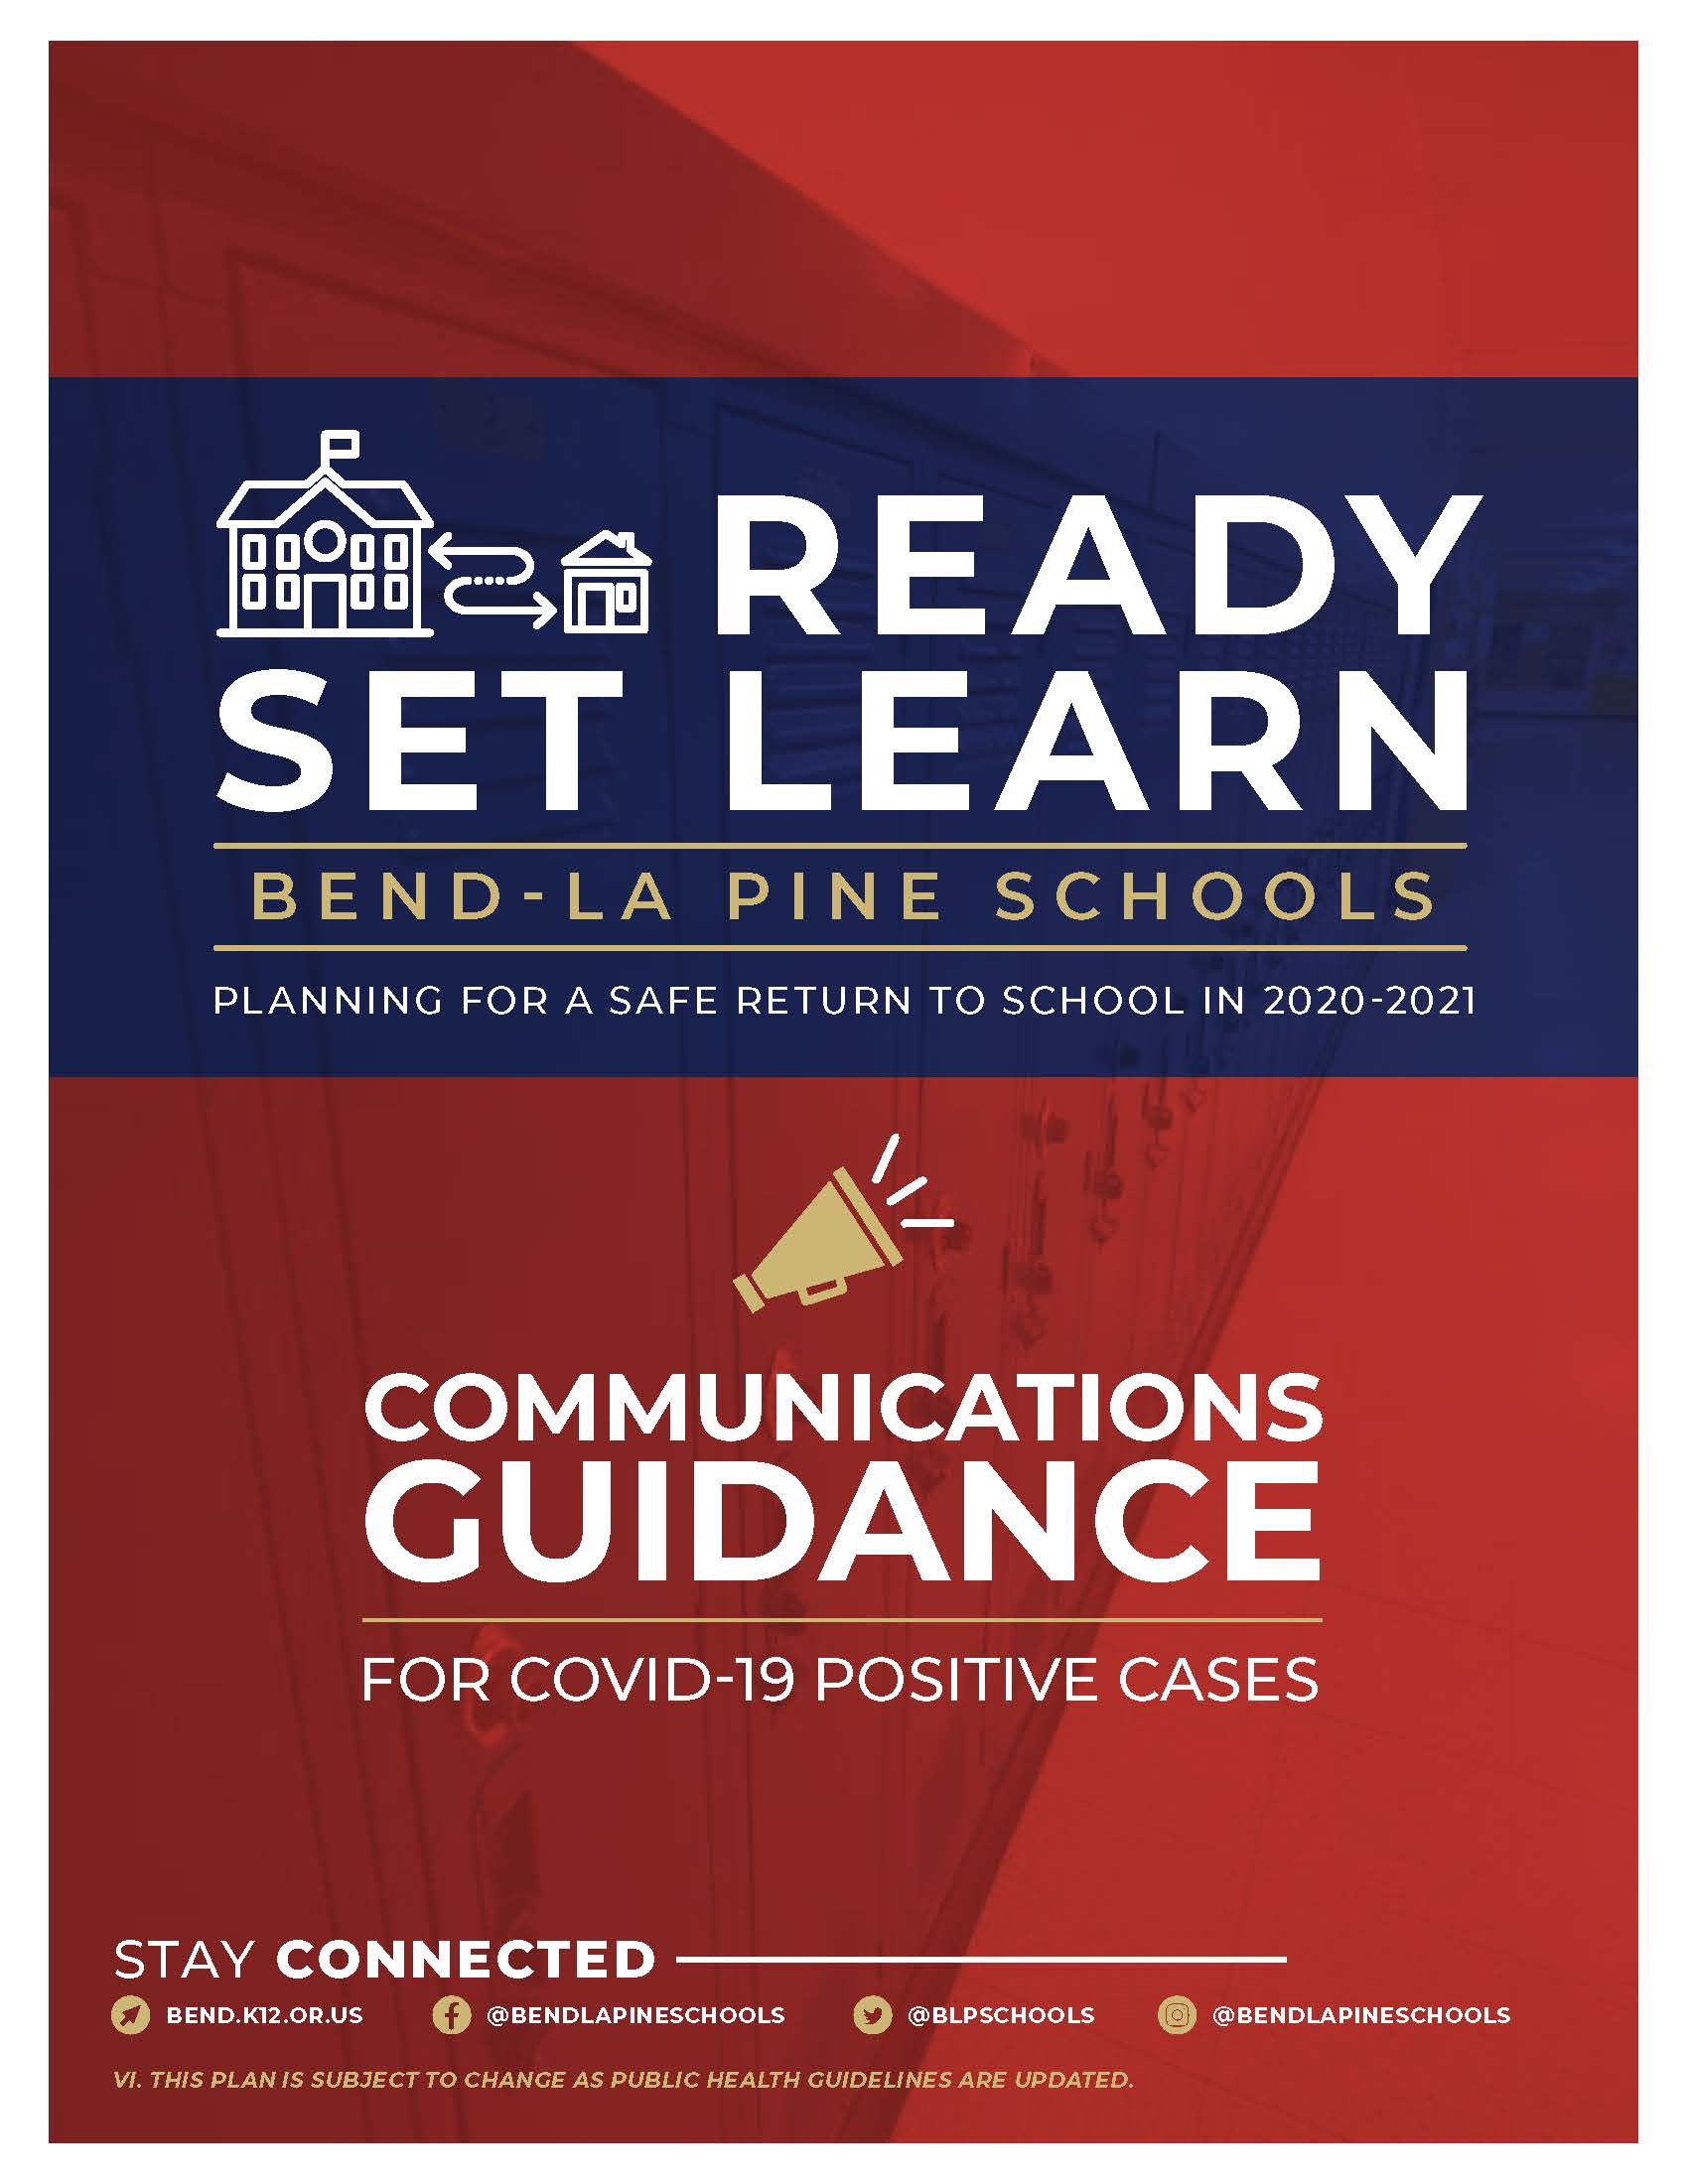 Ready Set Learn Communications Guidance